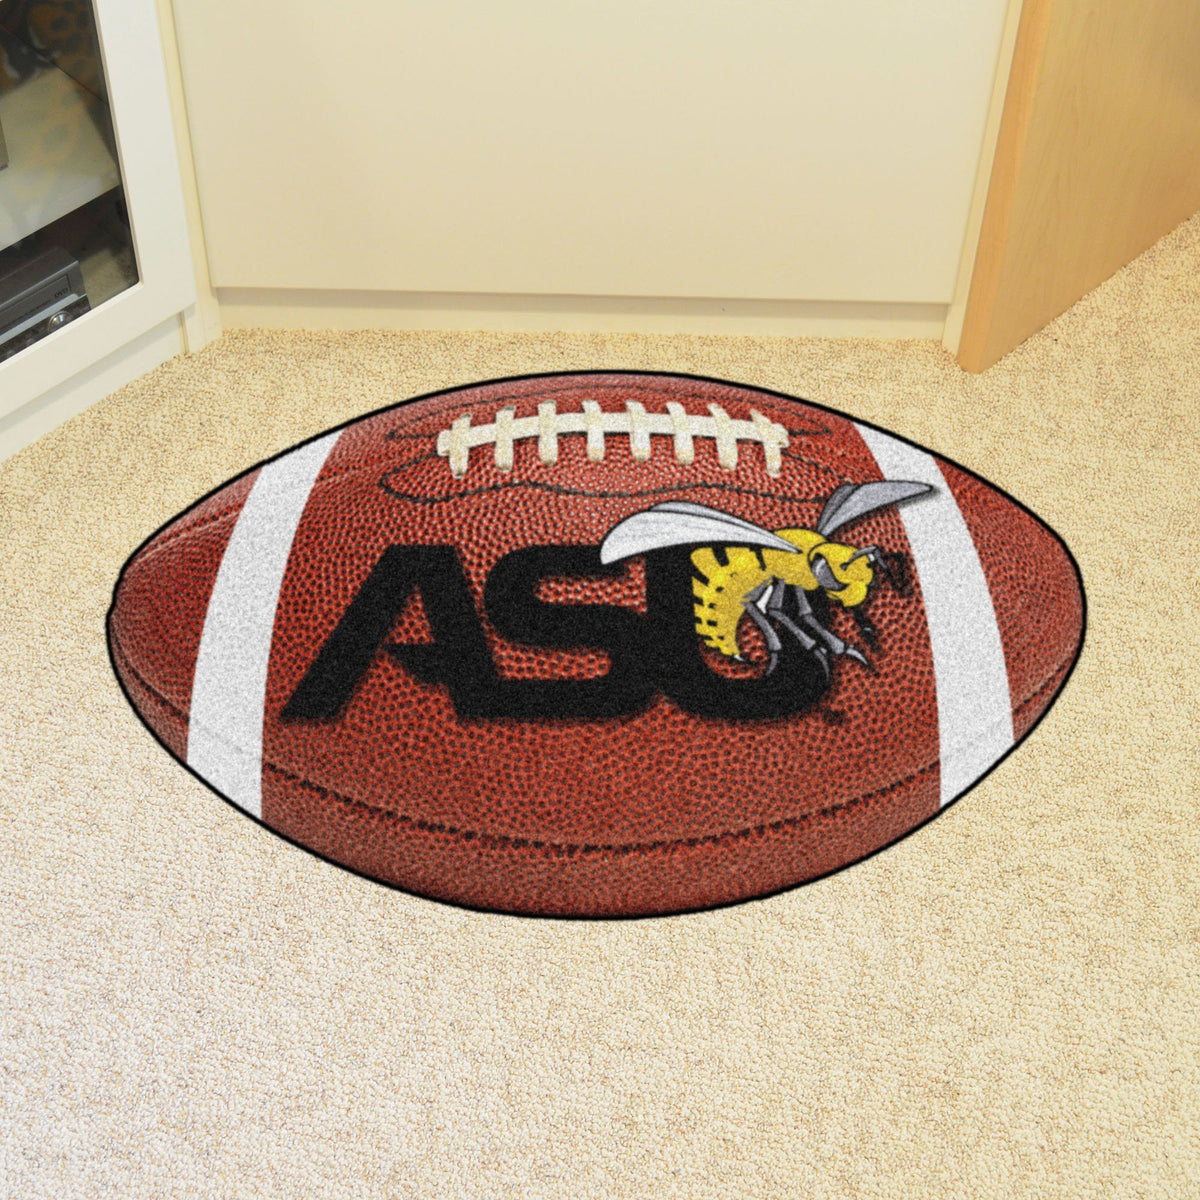 Collegiate - Football Mat: A - K Collegiate Mats, Rectangular Mats, Football Mat, Collegiate, Home Fan Mats Alabama State